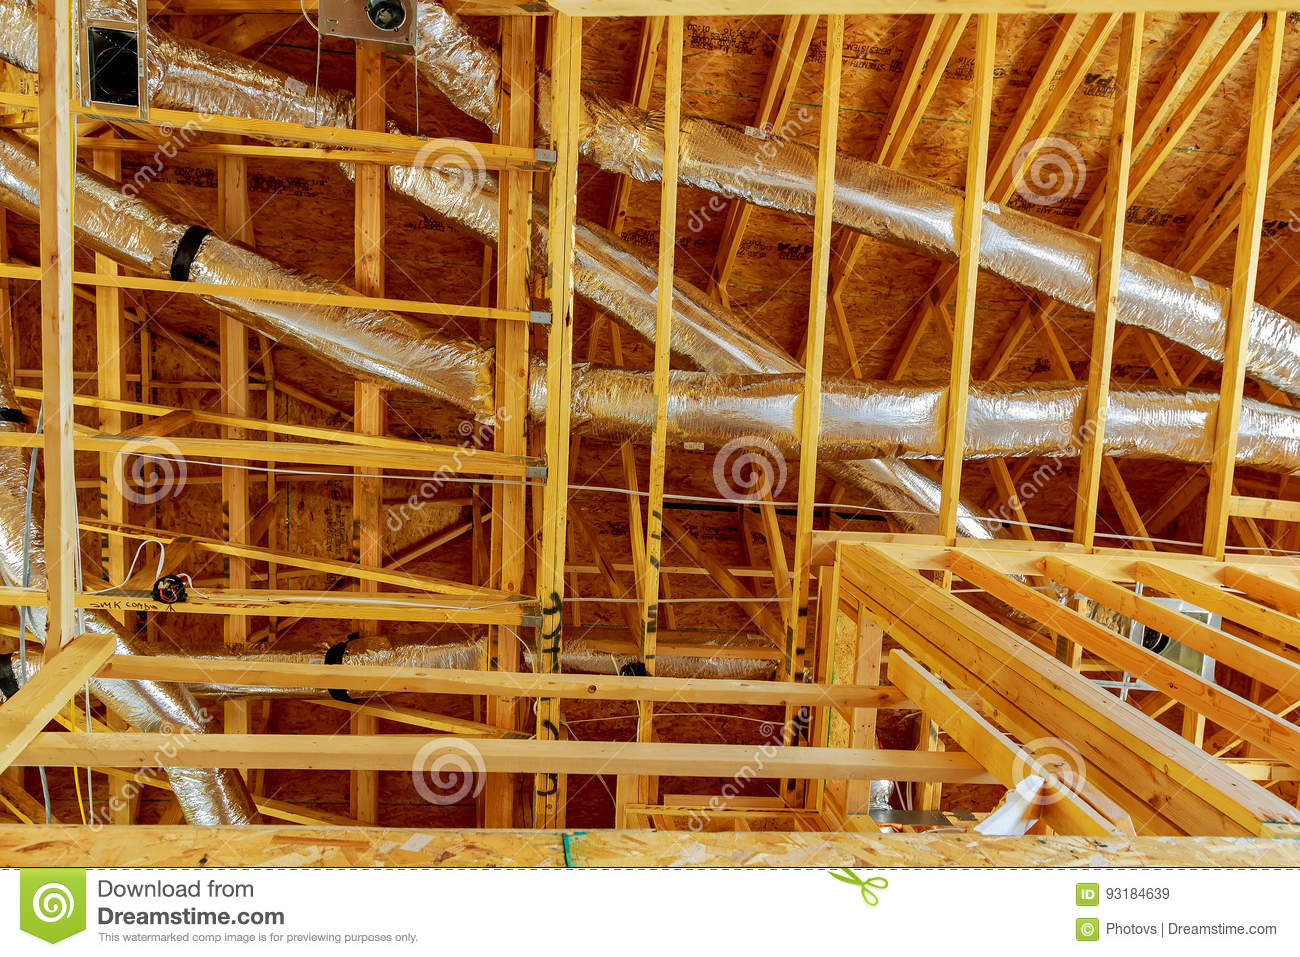 Wiring House Frame 3000 Warn Winch Diagram The Building Or With Basic Electrical Stock Image Rh Dreamstime Com A